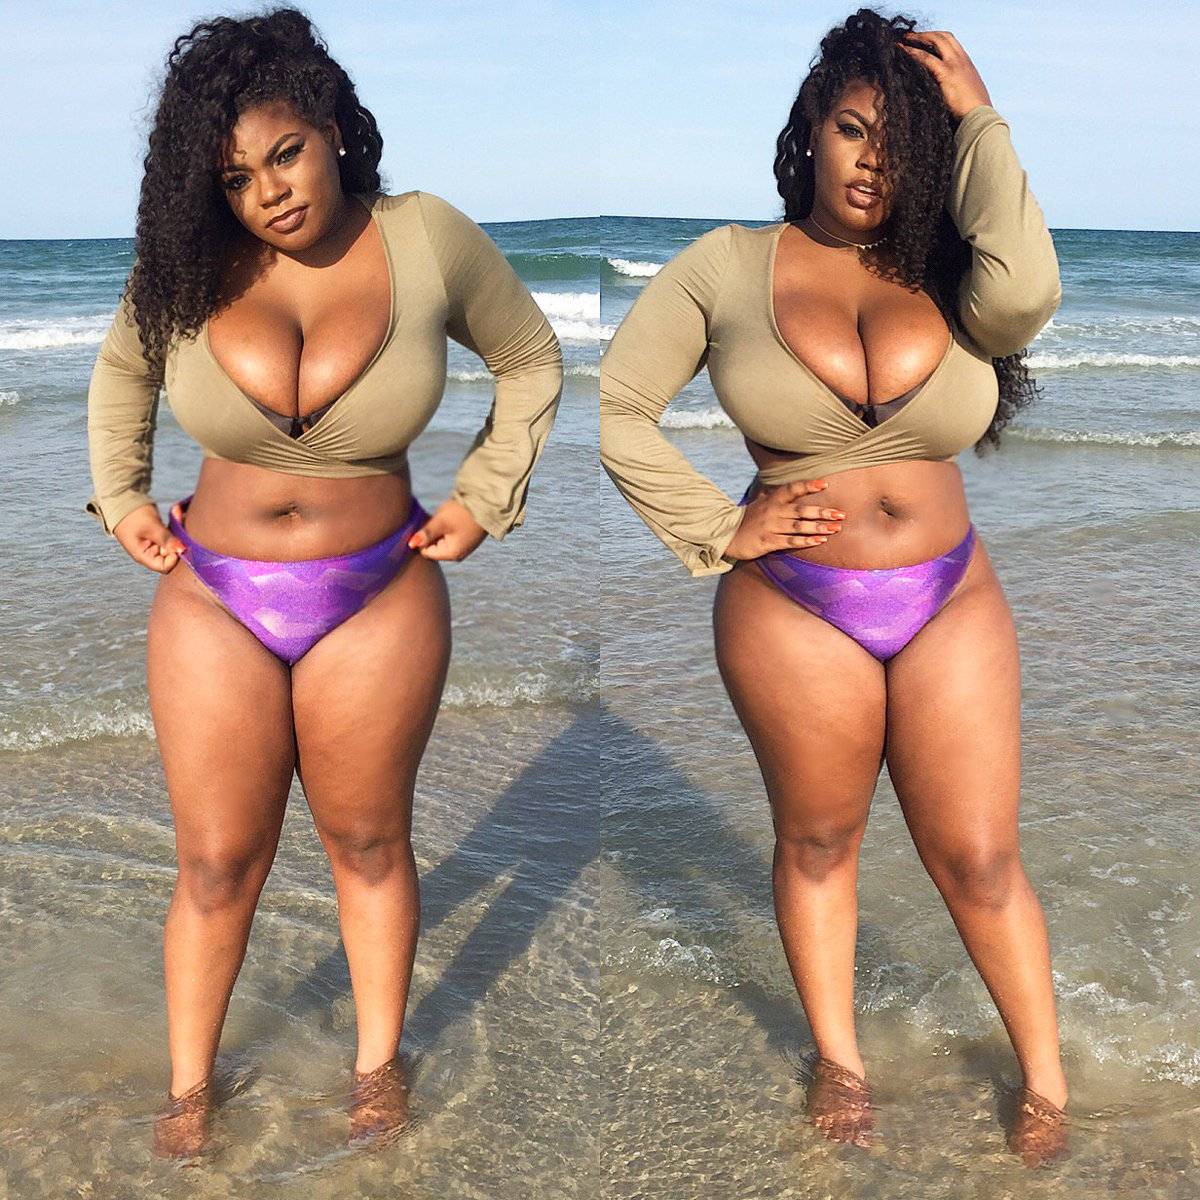 blackandcurvy hashtag on twitter